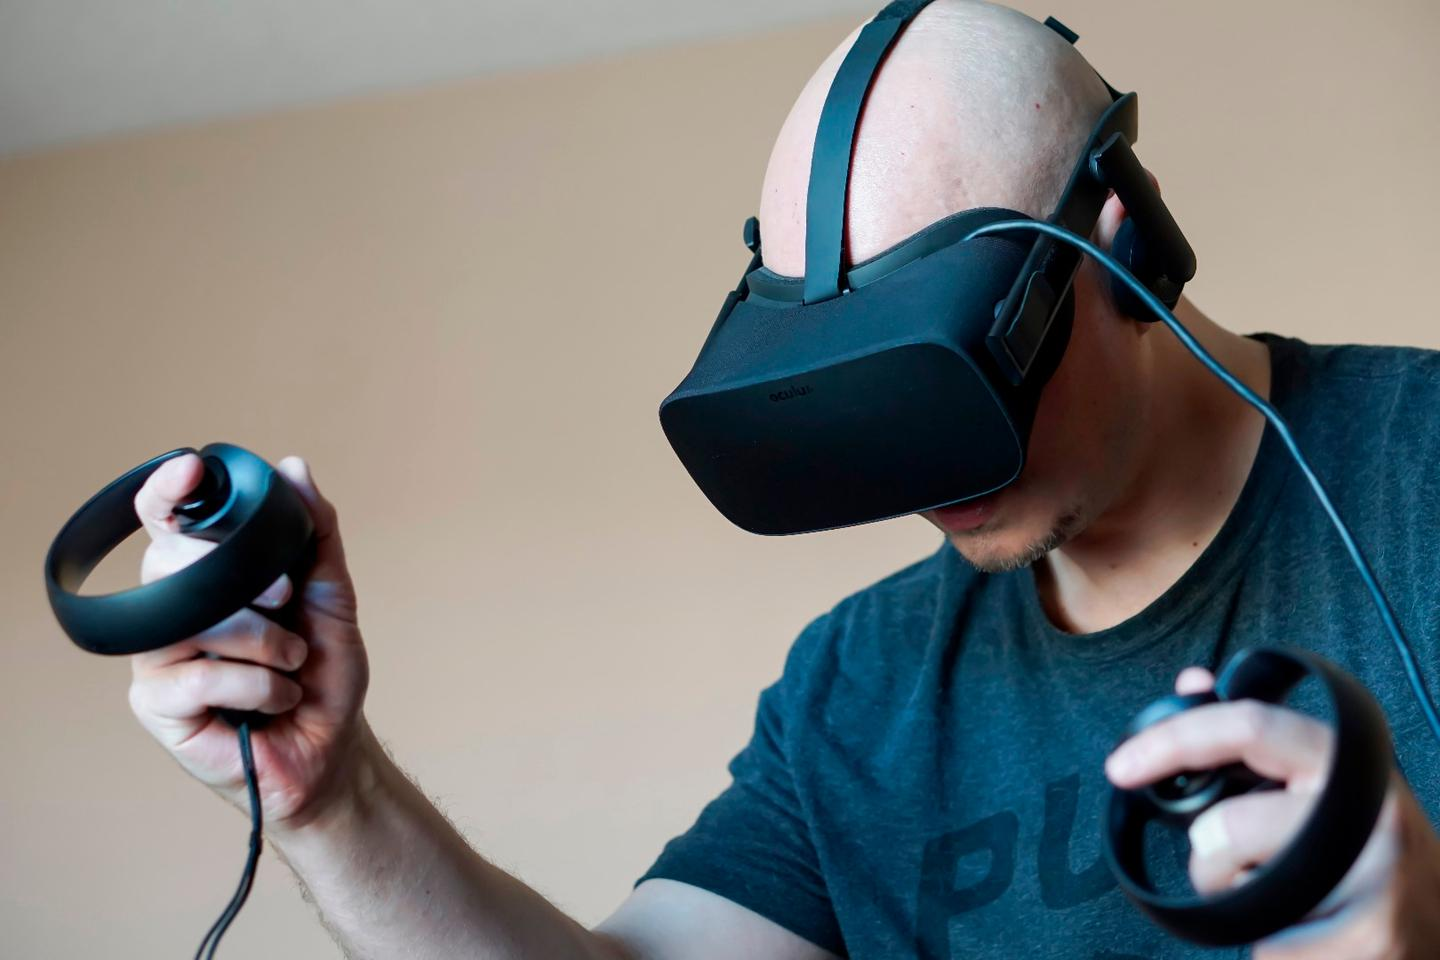 The result of adding Oculus Touch to the Rift? Highly immersive first-person experiences